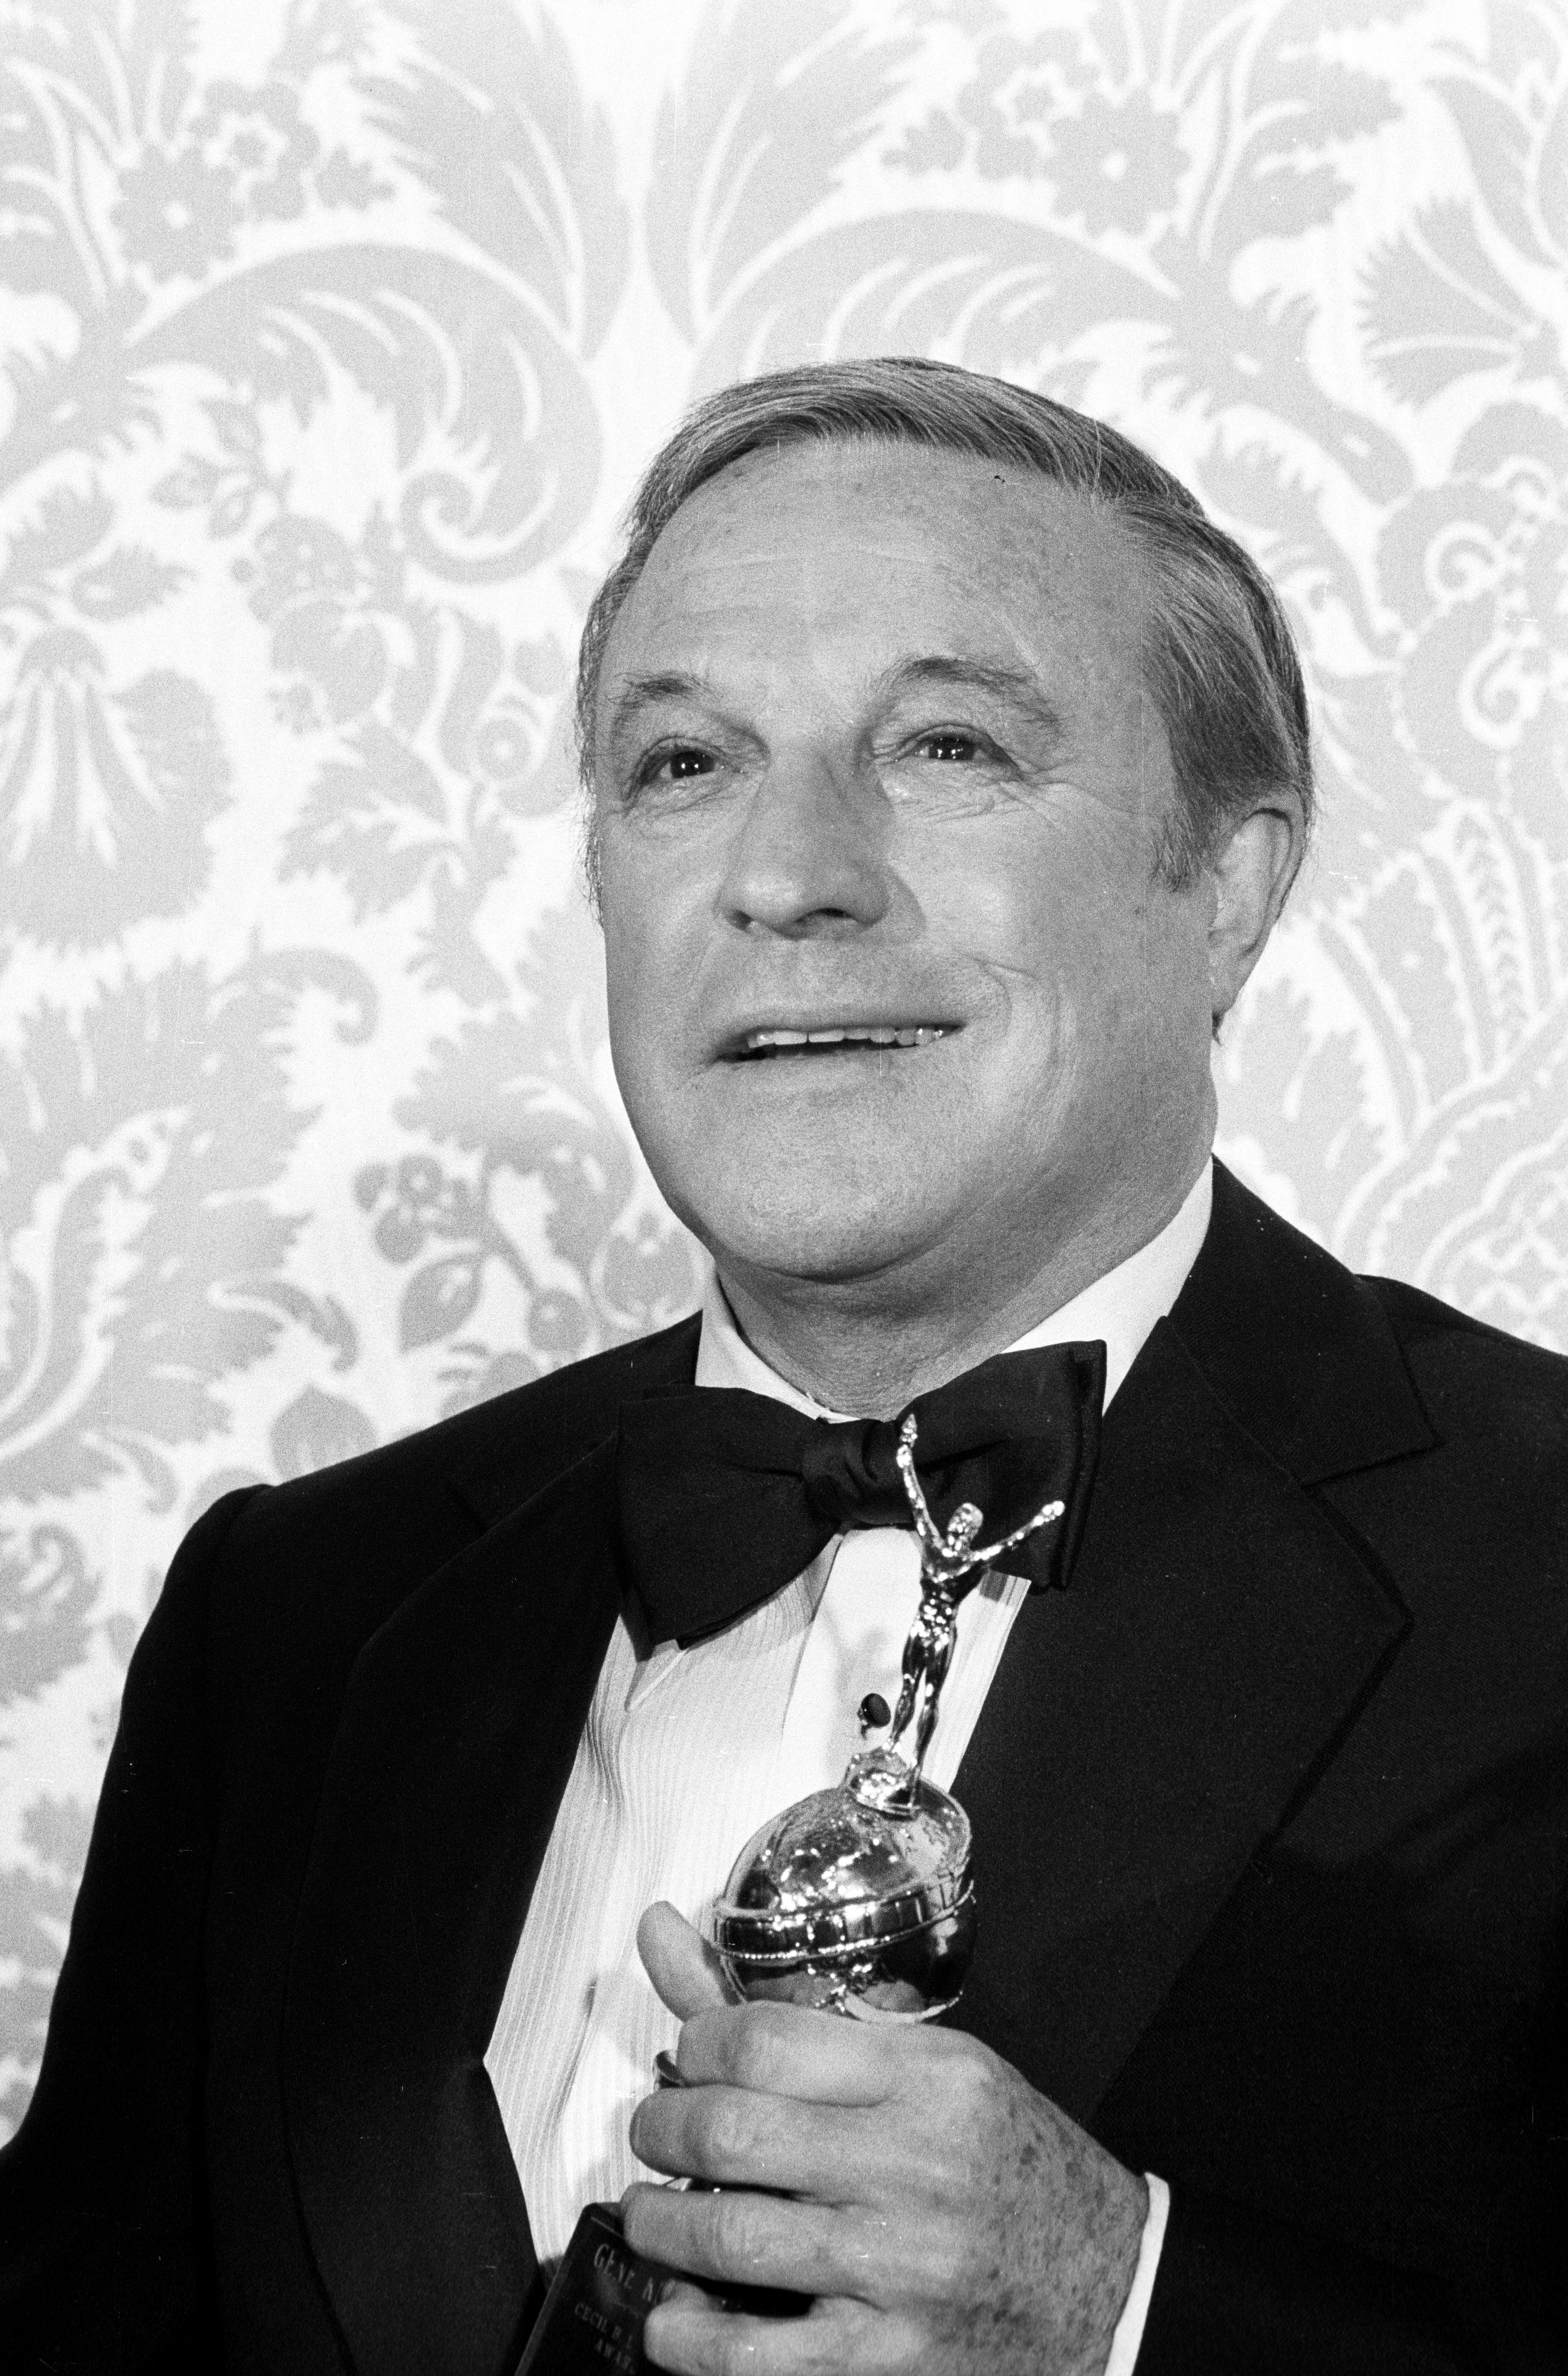 Actor, adncer, director Gene Kelly, Golen Globe nominee, Cecil B. deMille recipient